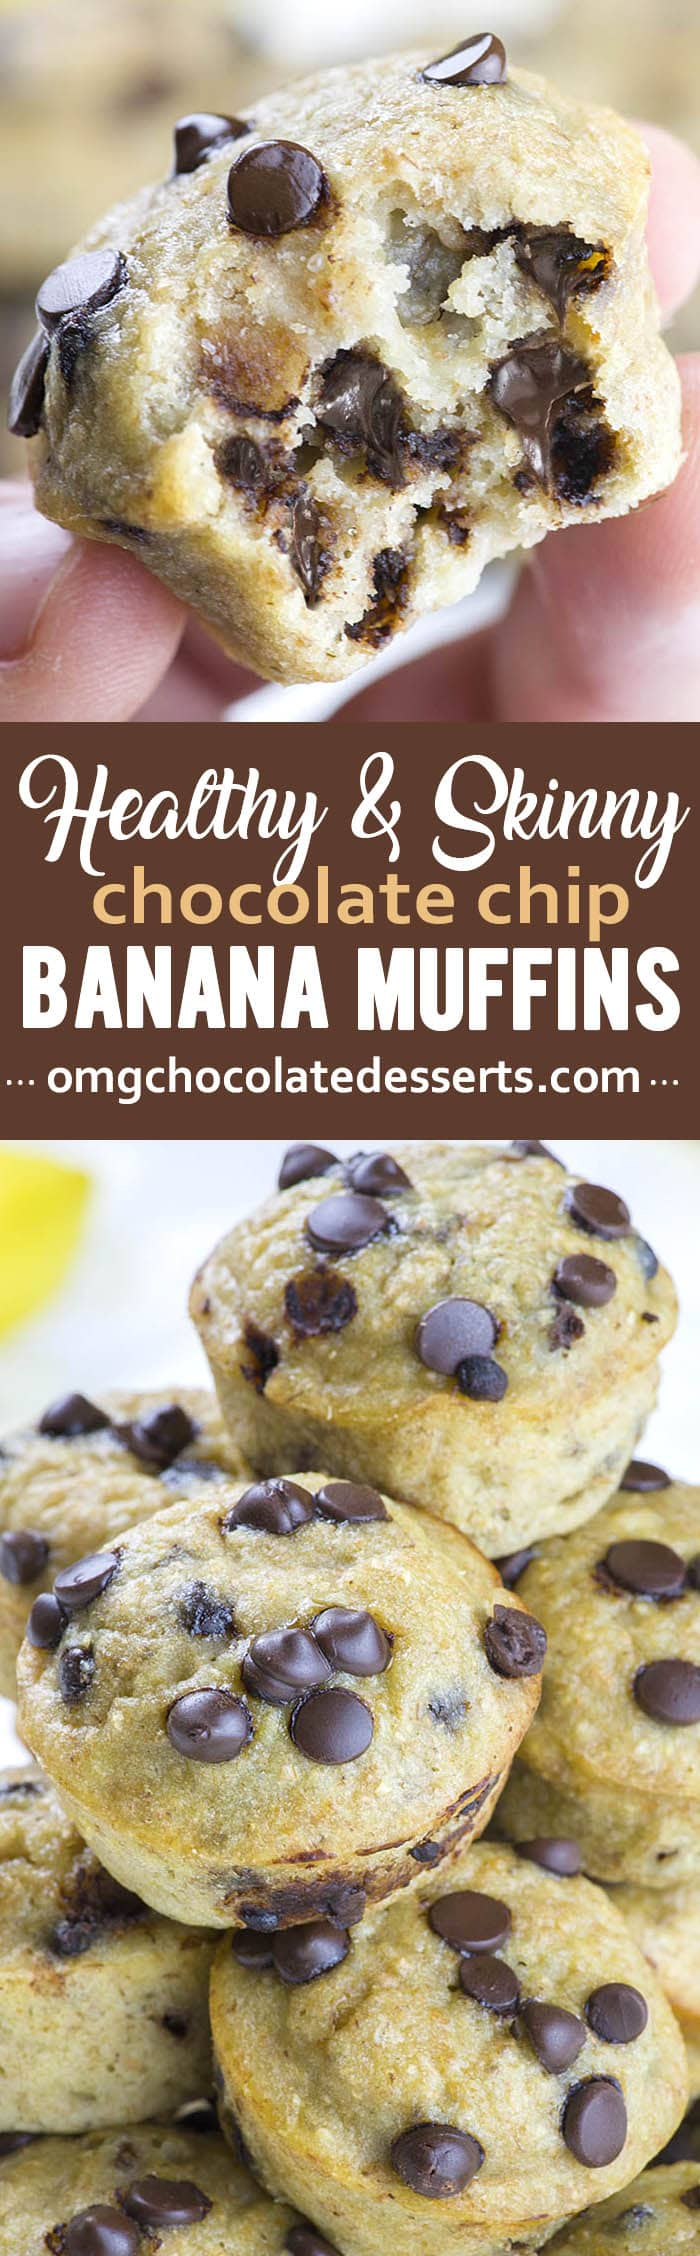 Skinny Chocolate Banana Muffins - a healthy indulgence! These soft muffins are perfect for breakfast or afternoon snacking..